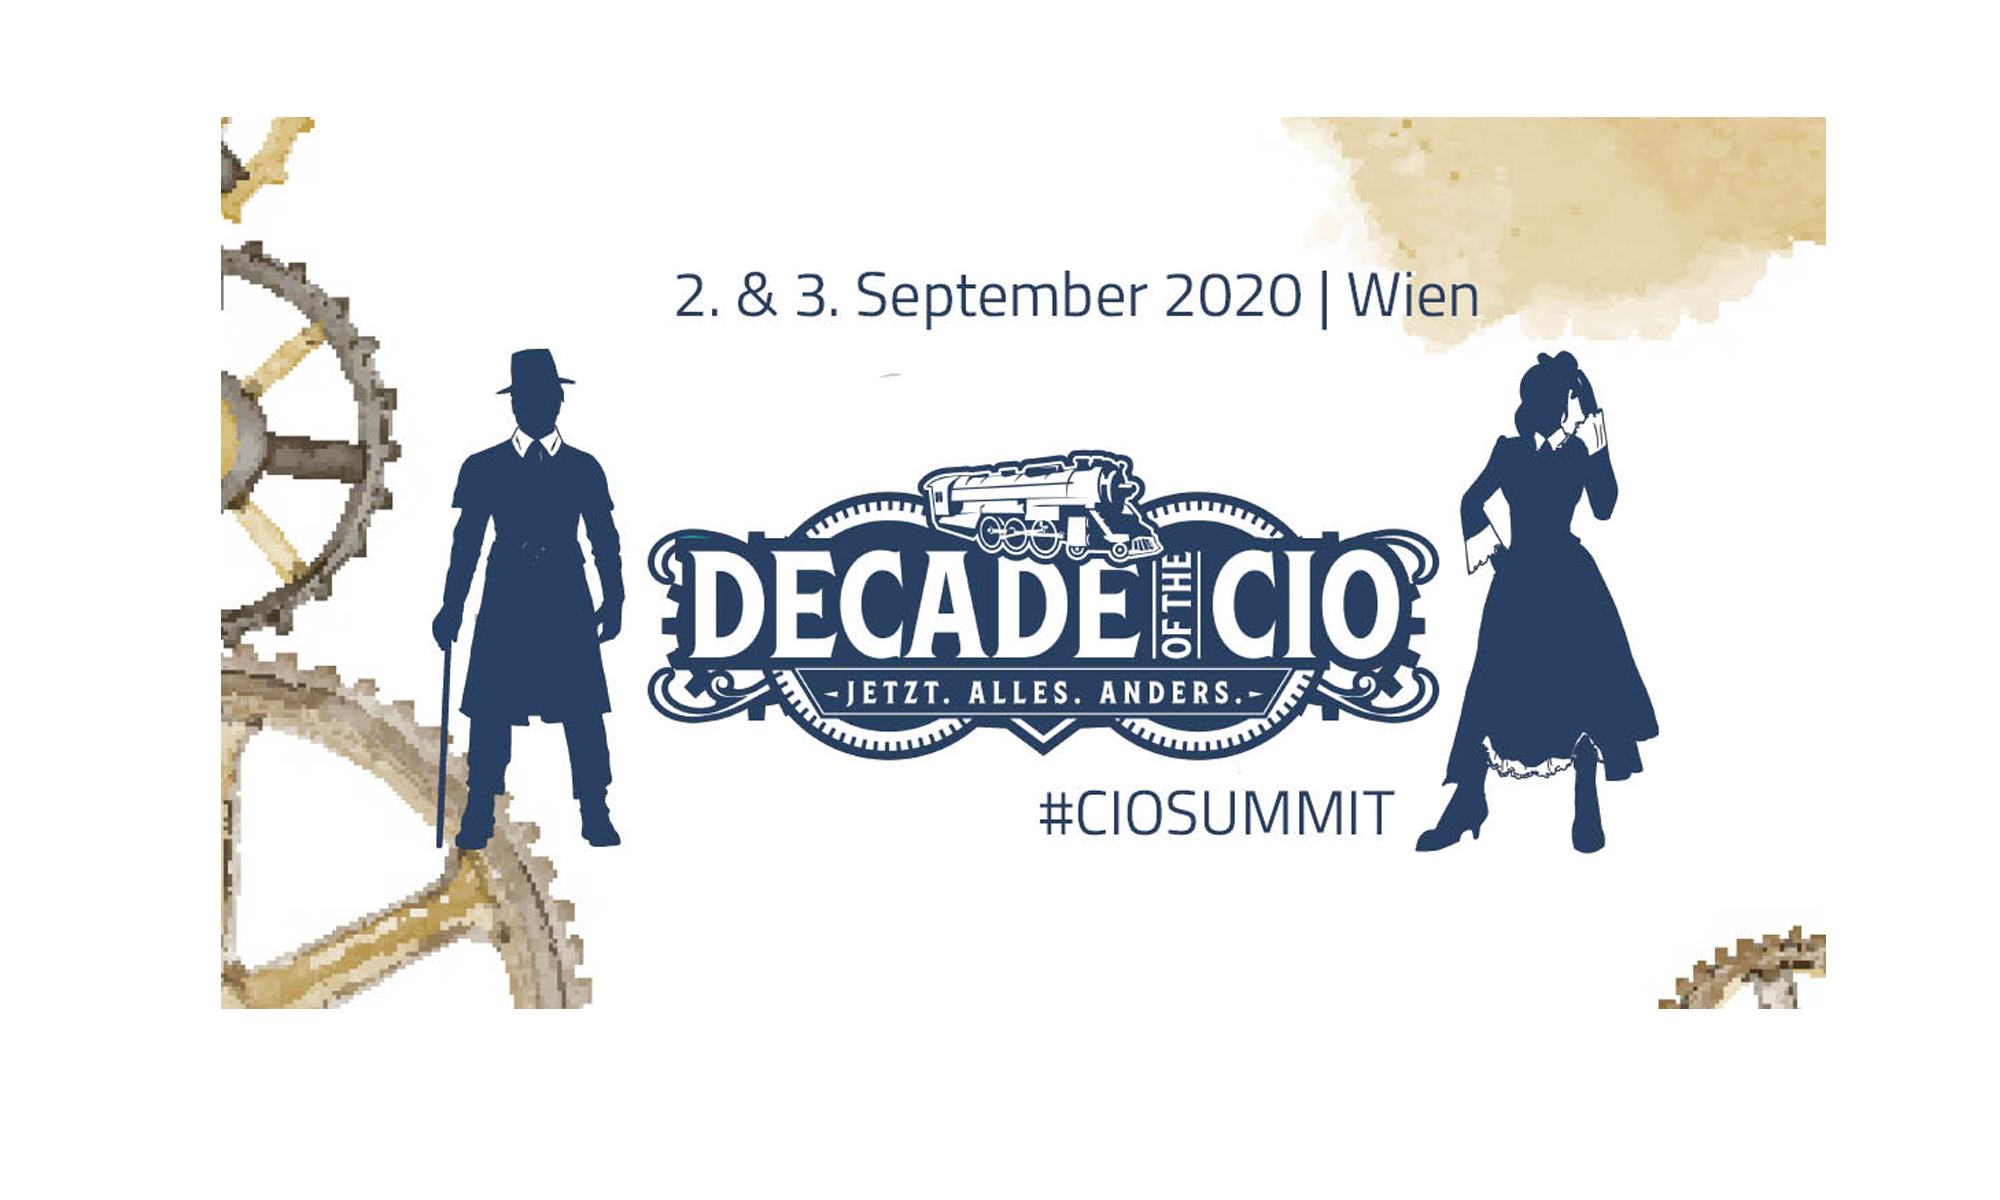 Confare CIO Summit 2020 this year with ABAX